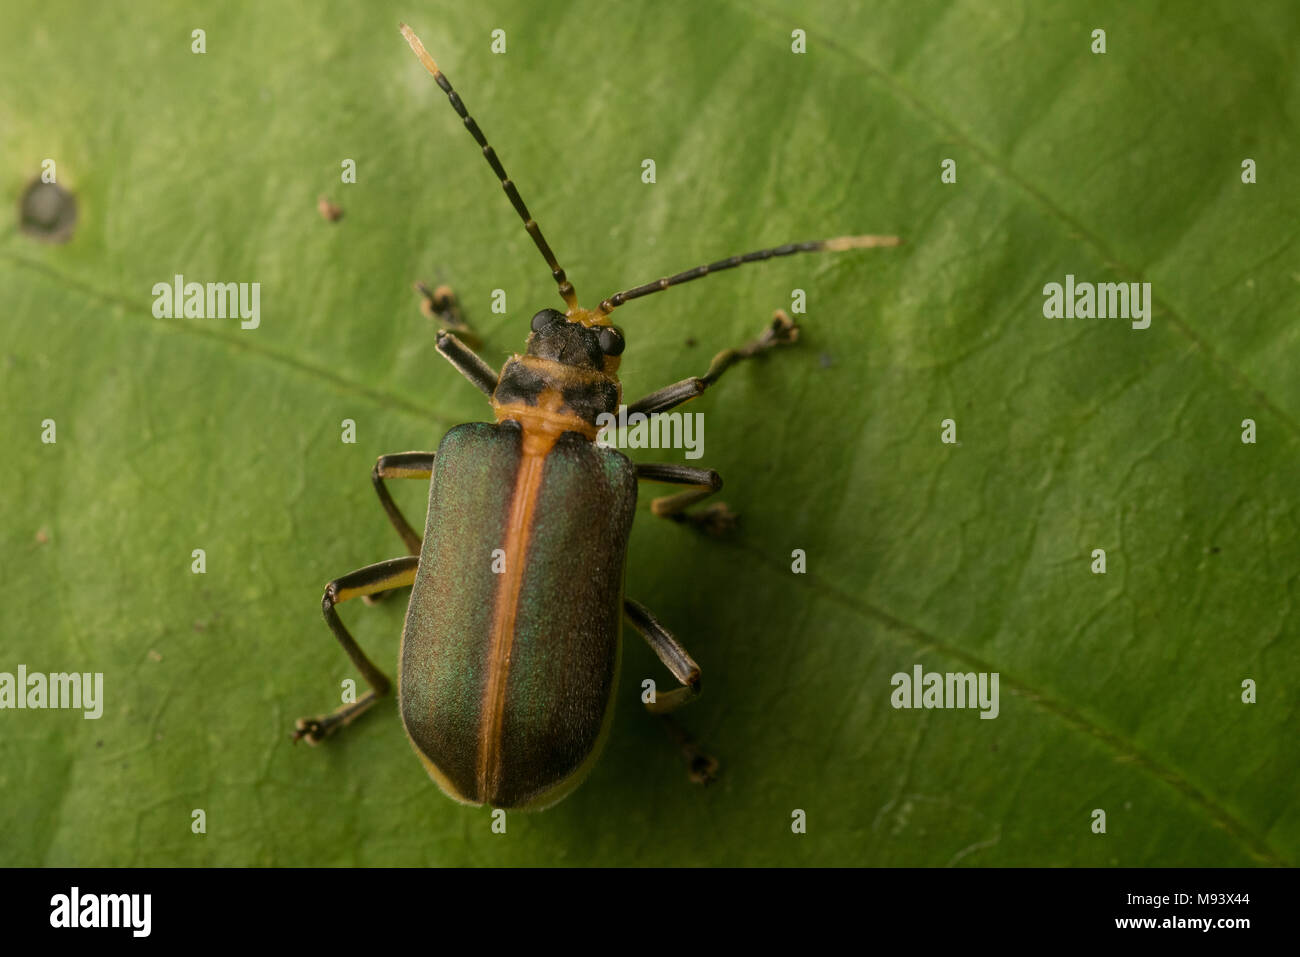 A leaf beetle (Family Chrysomelidae) from Peru. - Stock Image